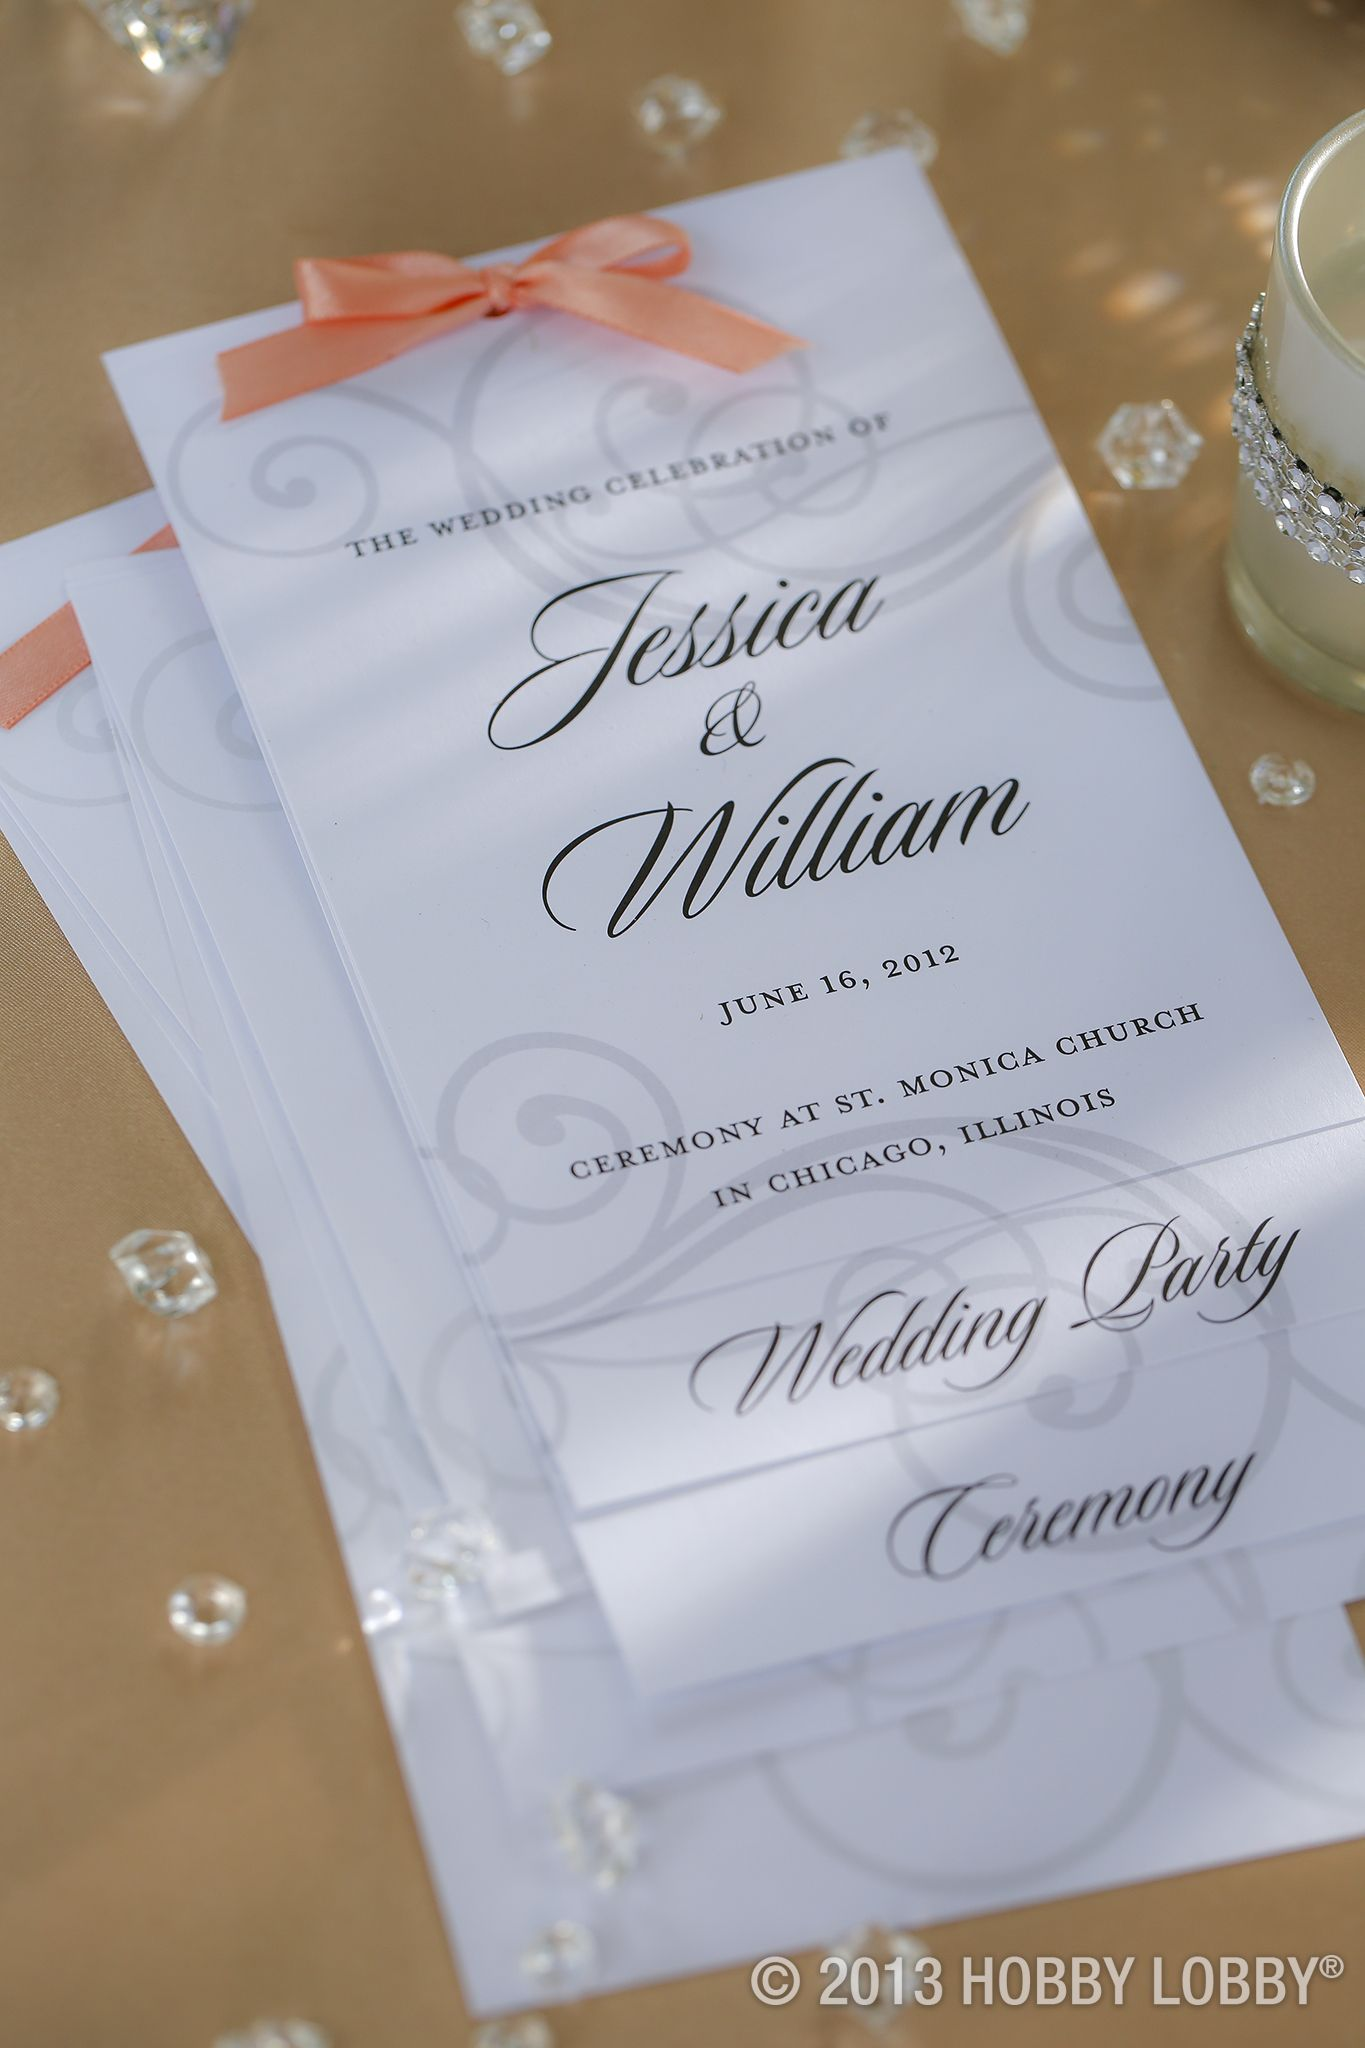 Kelli This Is What I Was Talking About Making Your Own Invitations Get Th Hobby Lobby Wedding Invitations Wedding Invitation Templates Wedding Invitations Diy